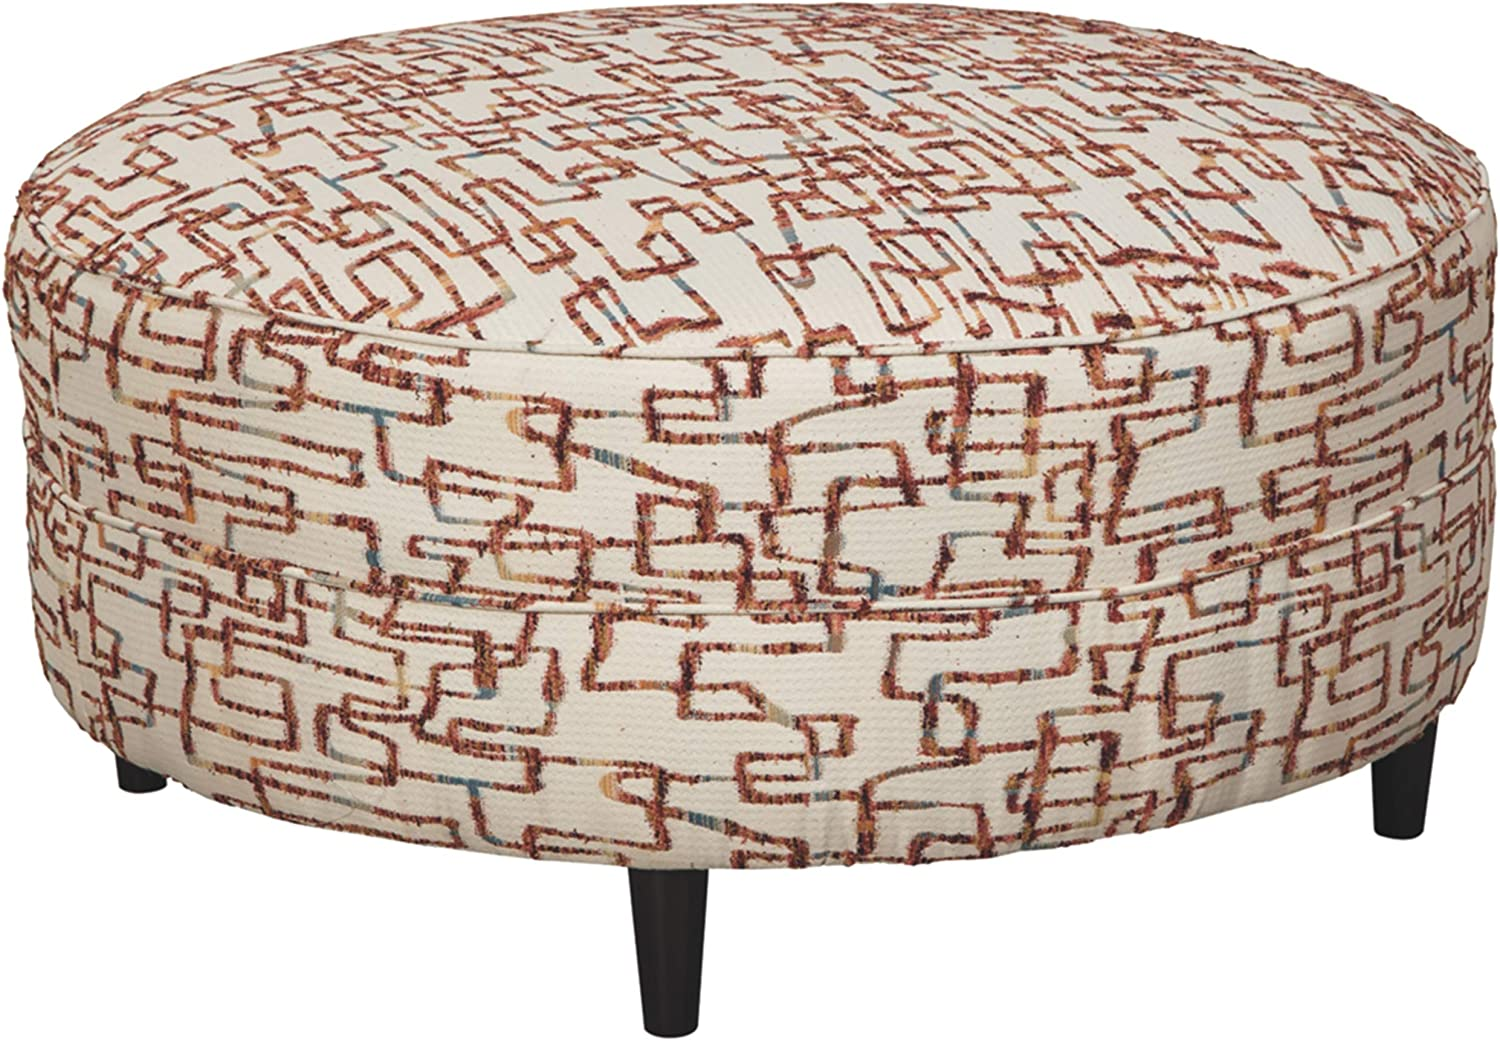 Signature Design by Ashley - Amici Unique Patterned Oversized Accent Ottoman, Beige/Red